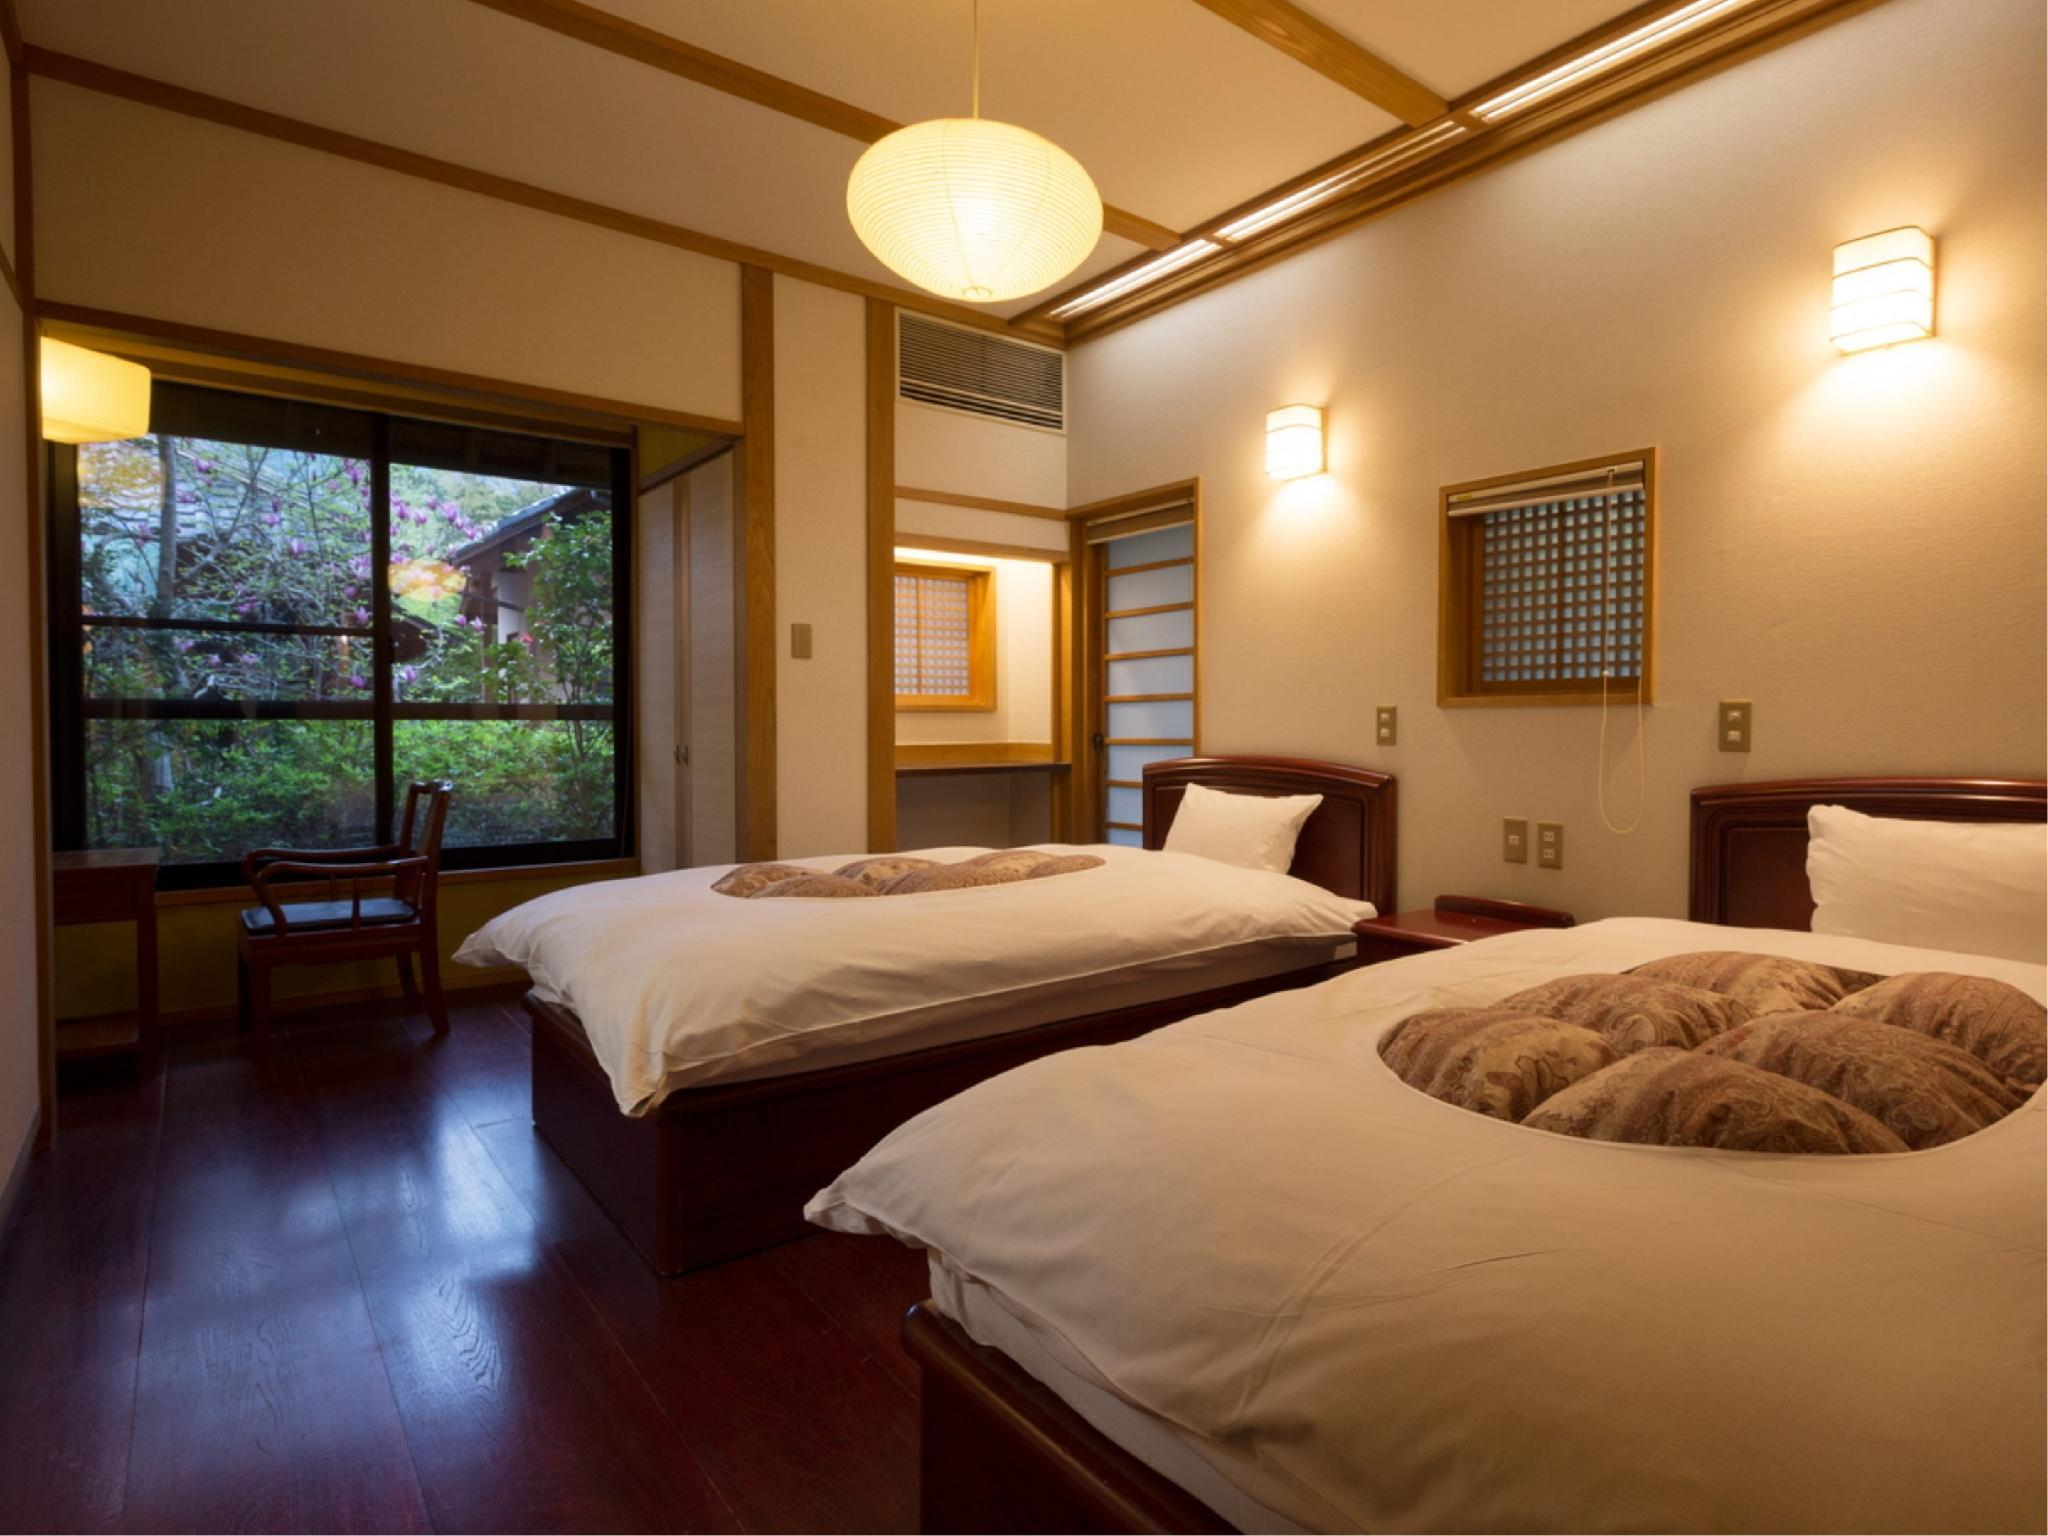 다다미 침대 객실 (Detached Japanese/Western-style Room with Open-air Bath (2 Beds))